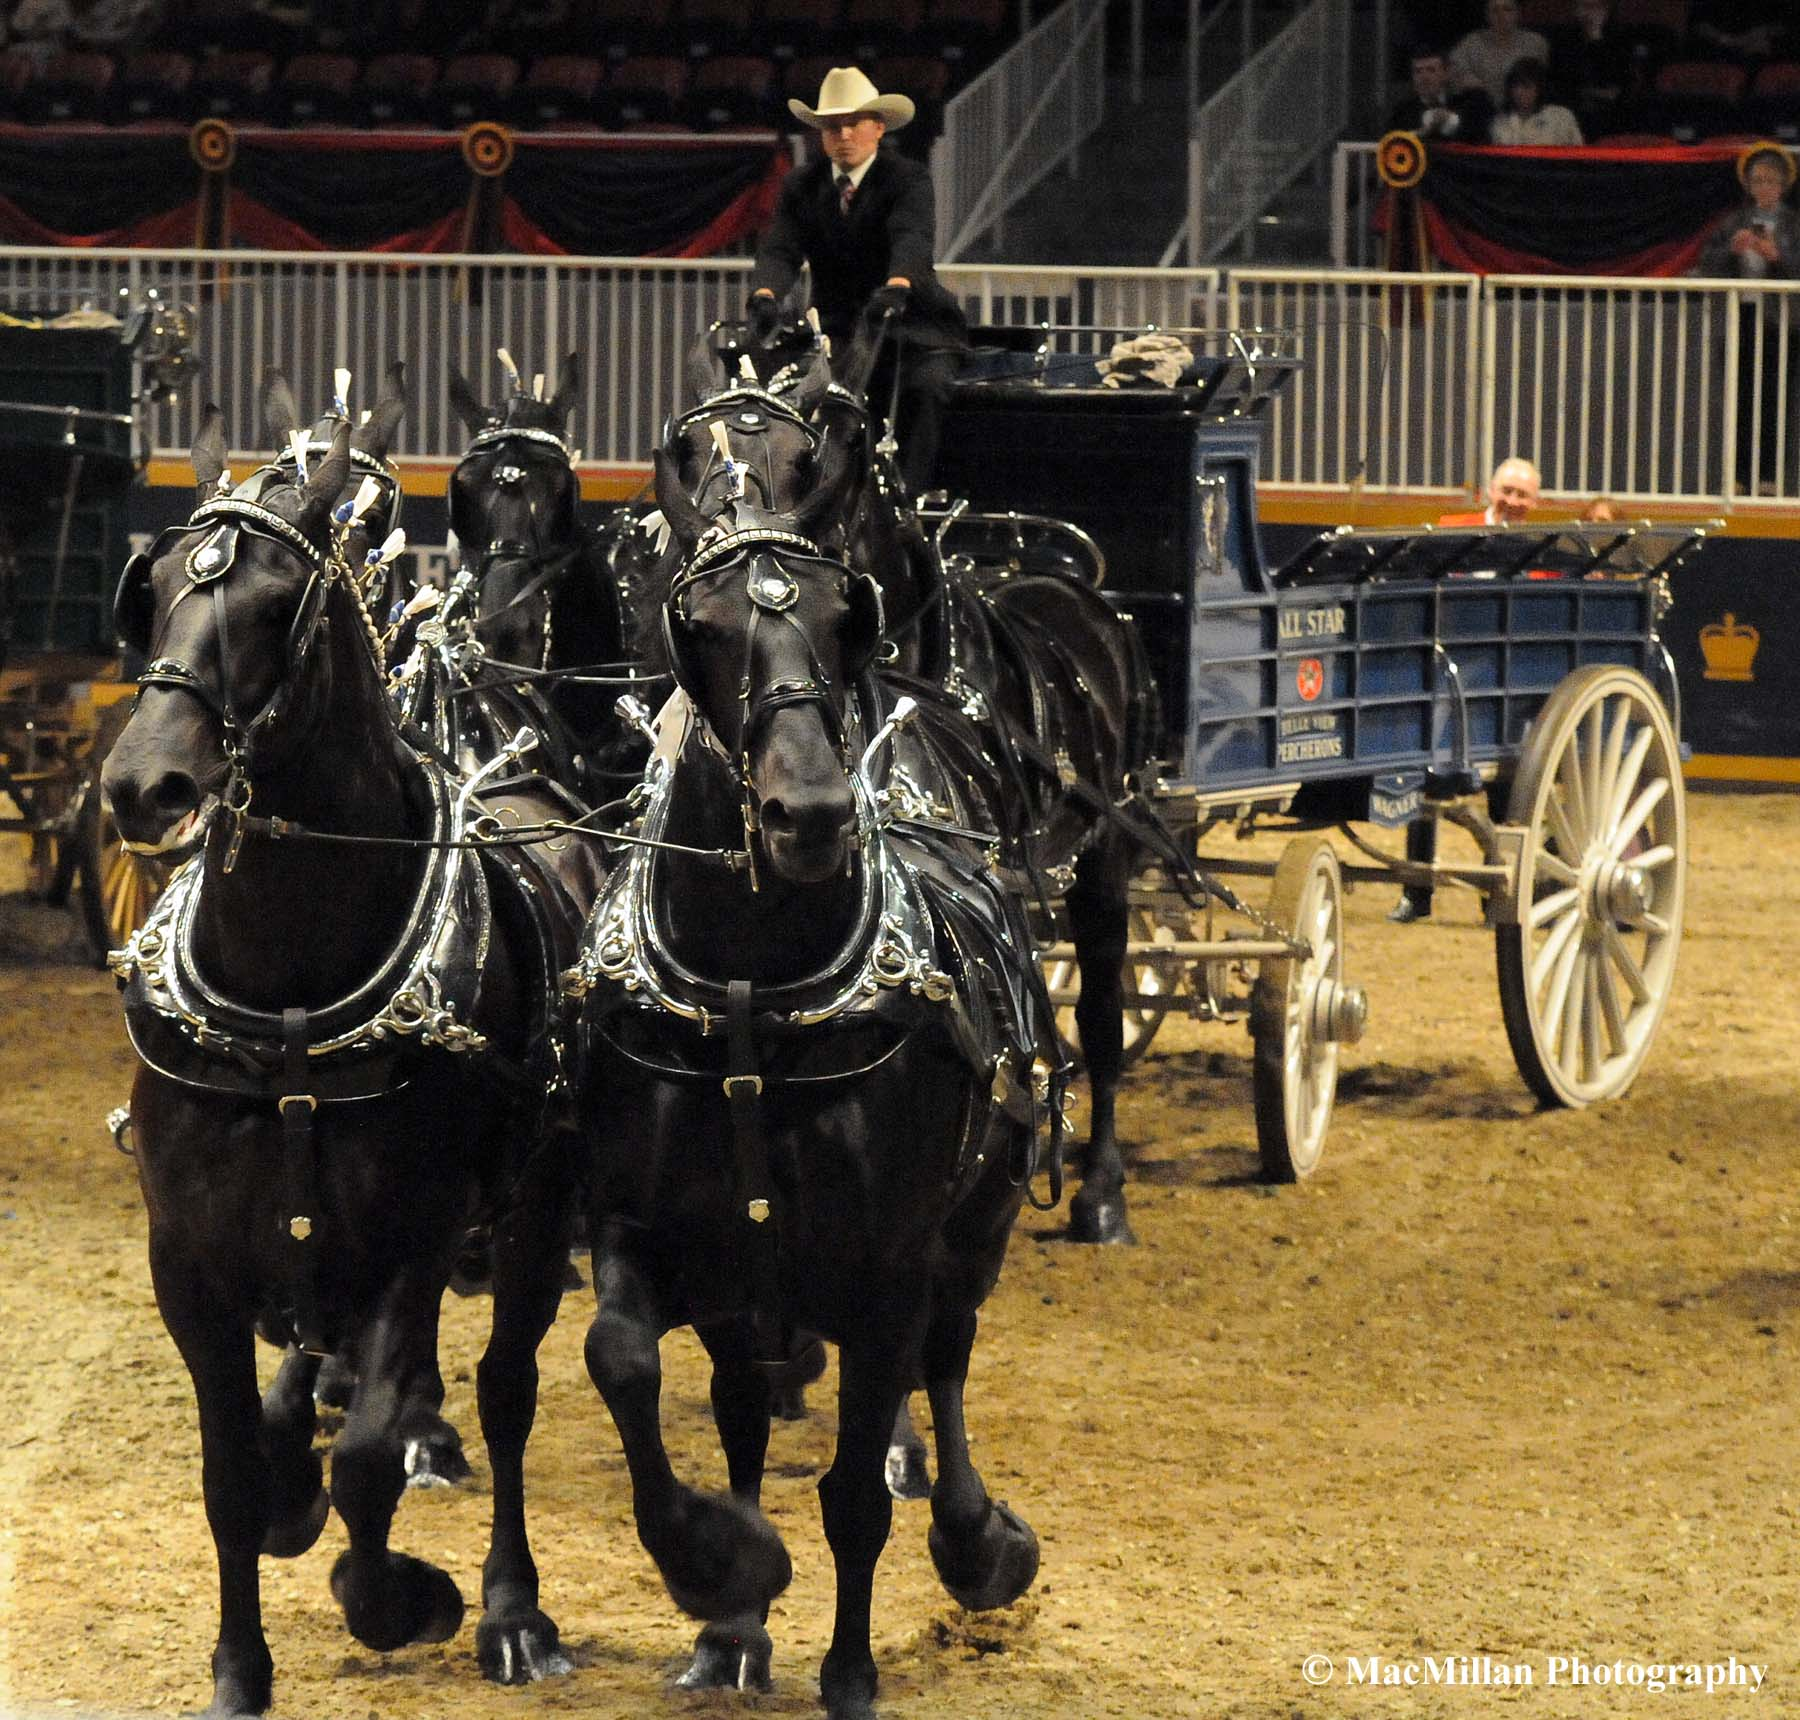 Photo 22 – Driver Ross Honsberger and the All Star Percheron Six-Horse Hitch won the Six-Horse Hitch Championship at the 2015 Royal Horse Show in Toronto. The All Star Percherons six-horse hitch was made up of all mares, listed from the driver's perspective (position in hitch, name and age): right wheel horse, Kate, 9; left wheel horse, Mitsy, 9; right swing horse, Candy, 5; left swing horse, Xena, 5; right lead horse, Tory, 5, and left lead horse, Queen, 9. The All Star wagon was made in 2006 by the Hanson Wheel Wagon Works and they purchased it from Creelman Percherons in Nova Scotia. Photo by Kim MacMillan/MacMillan Photography